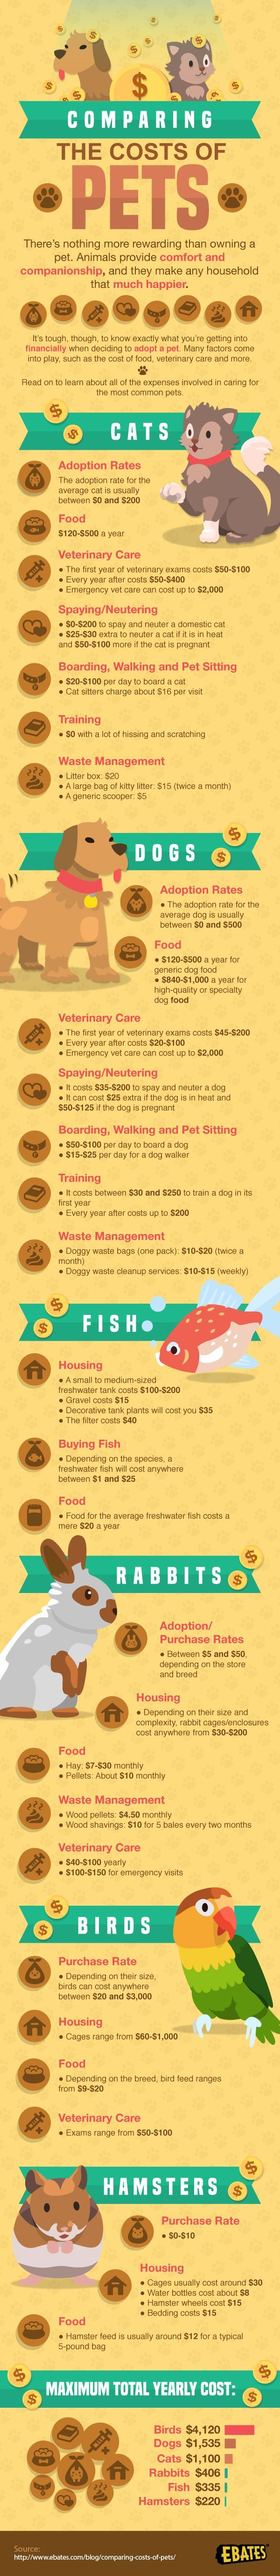 Comparing the cost of pets #infographic #Pets